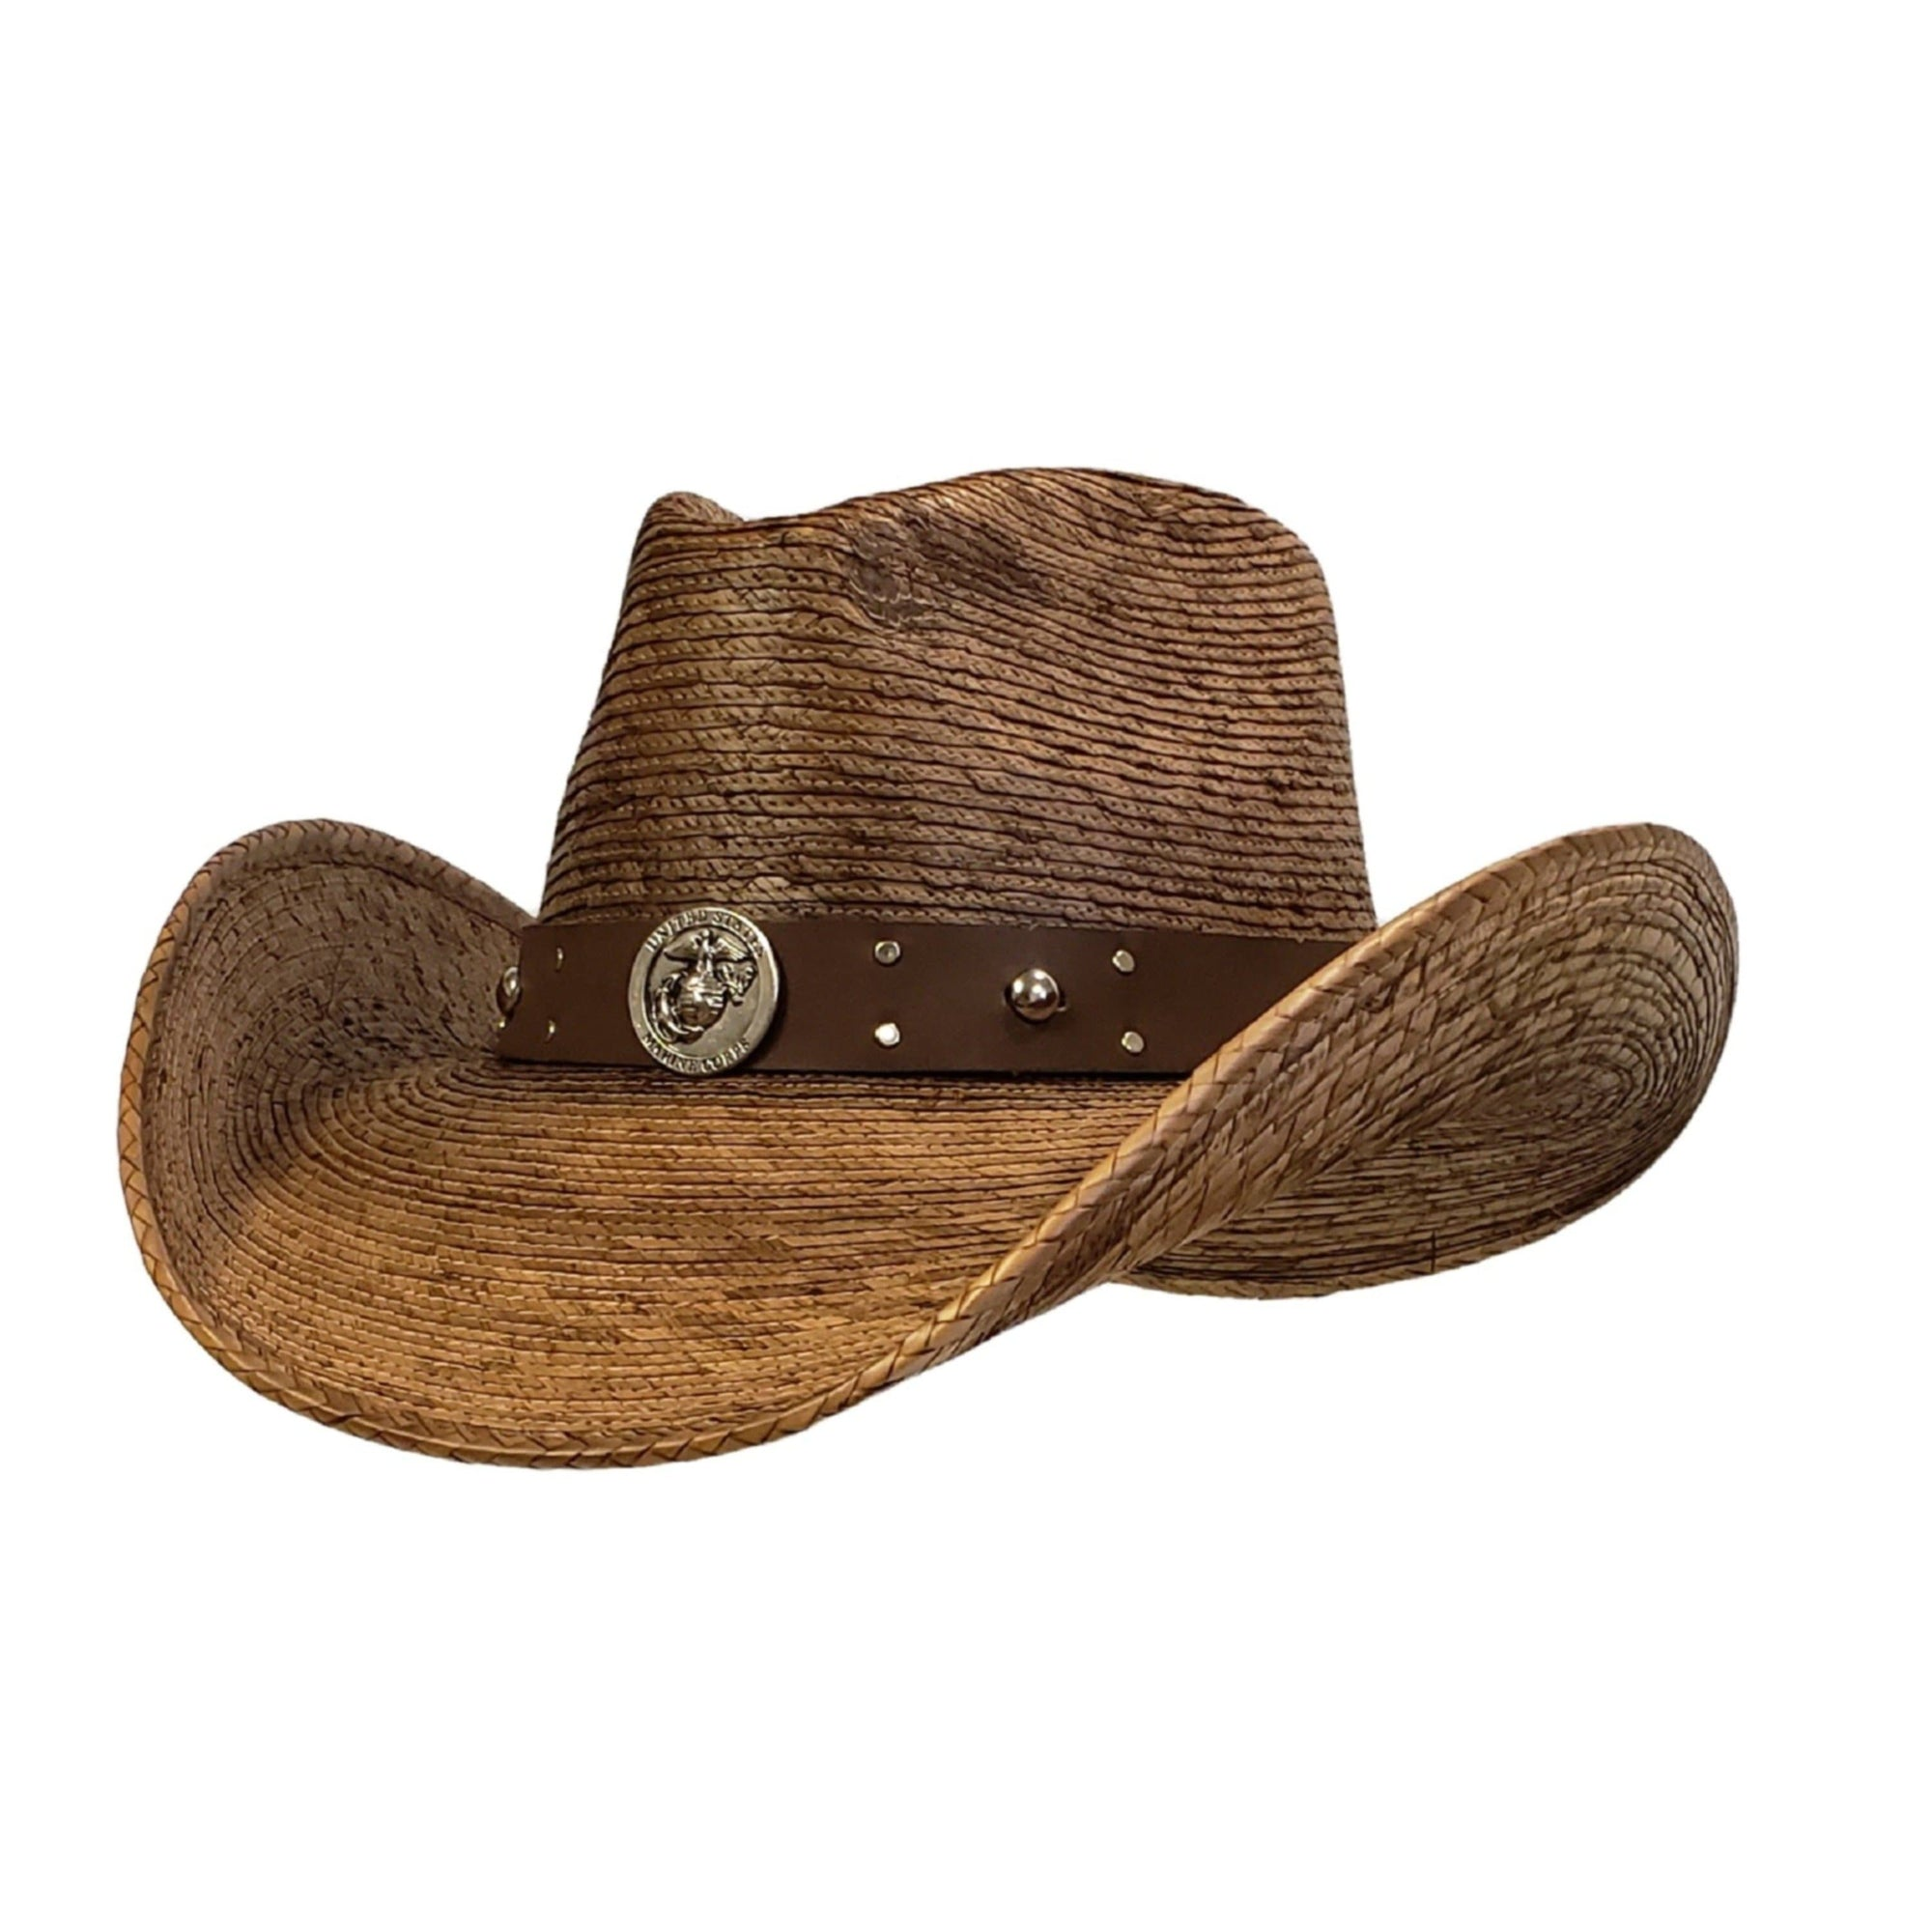 Brown palm cowboy hat with an marine hat band